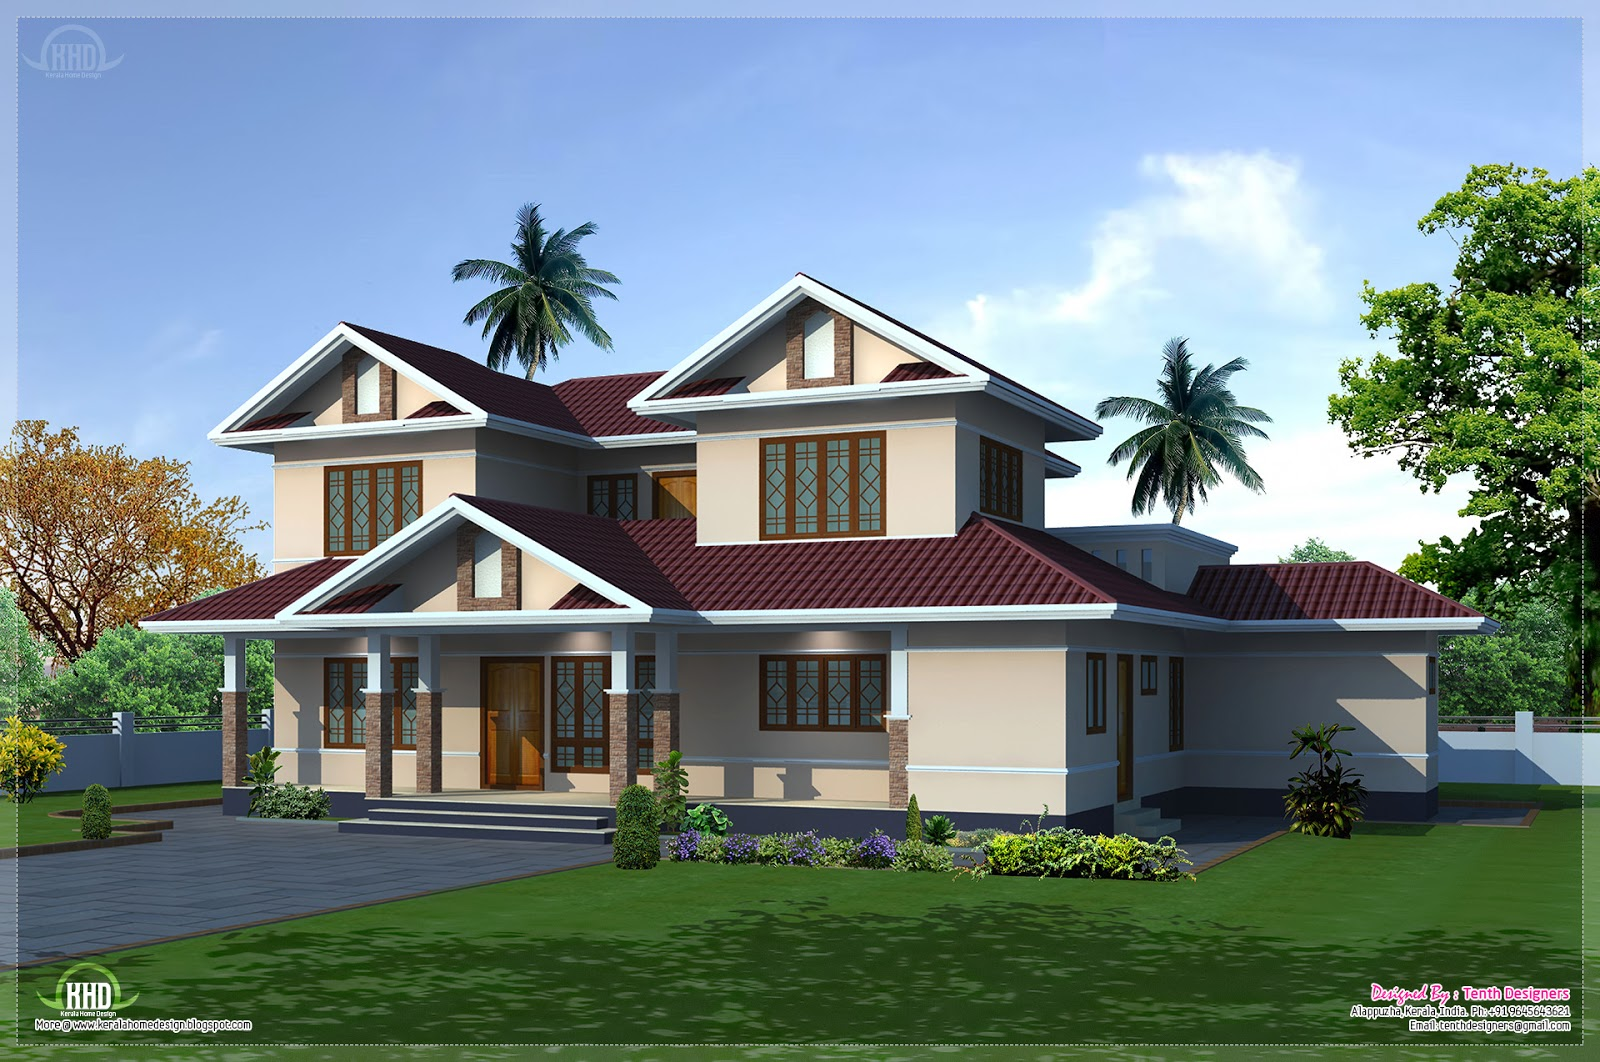 Exterior traditional house plans exterior house designs for Classic house design exterior